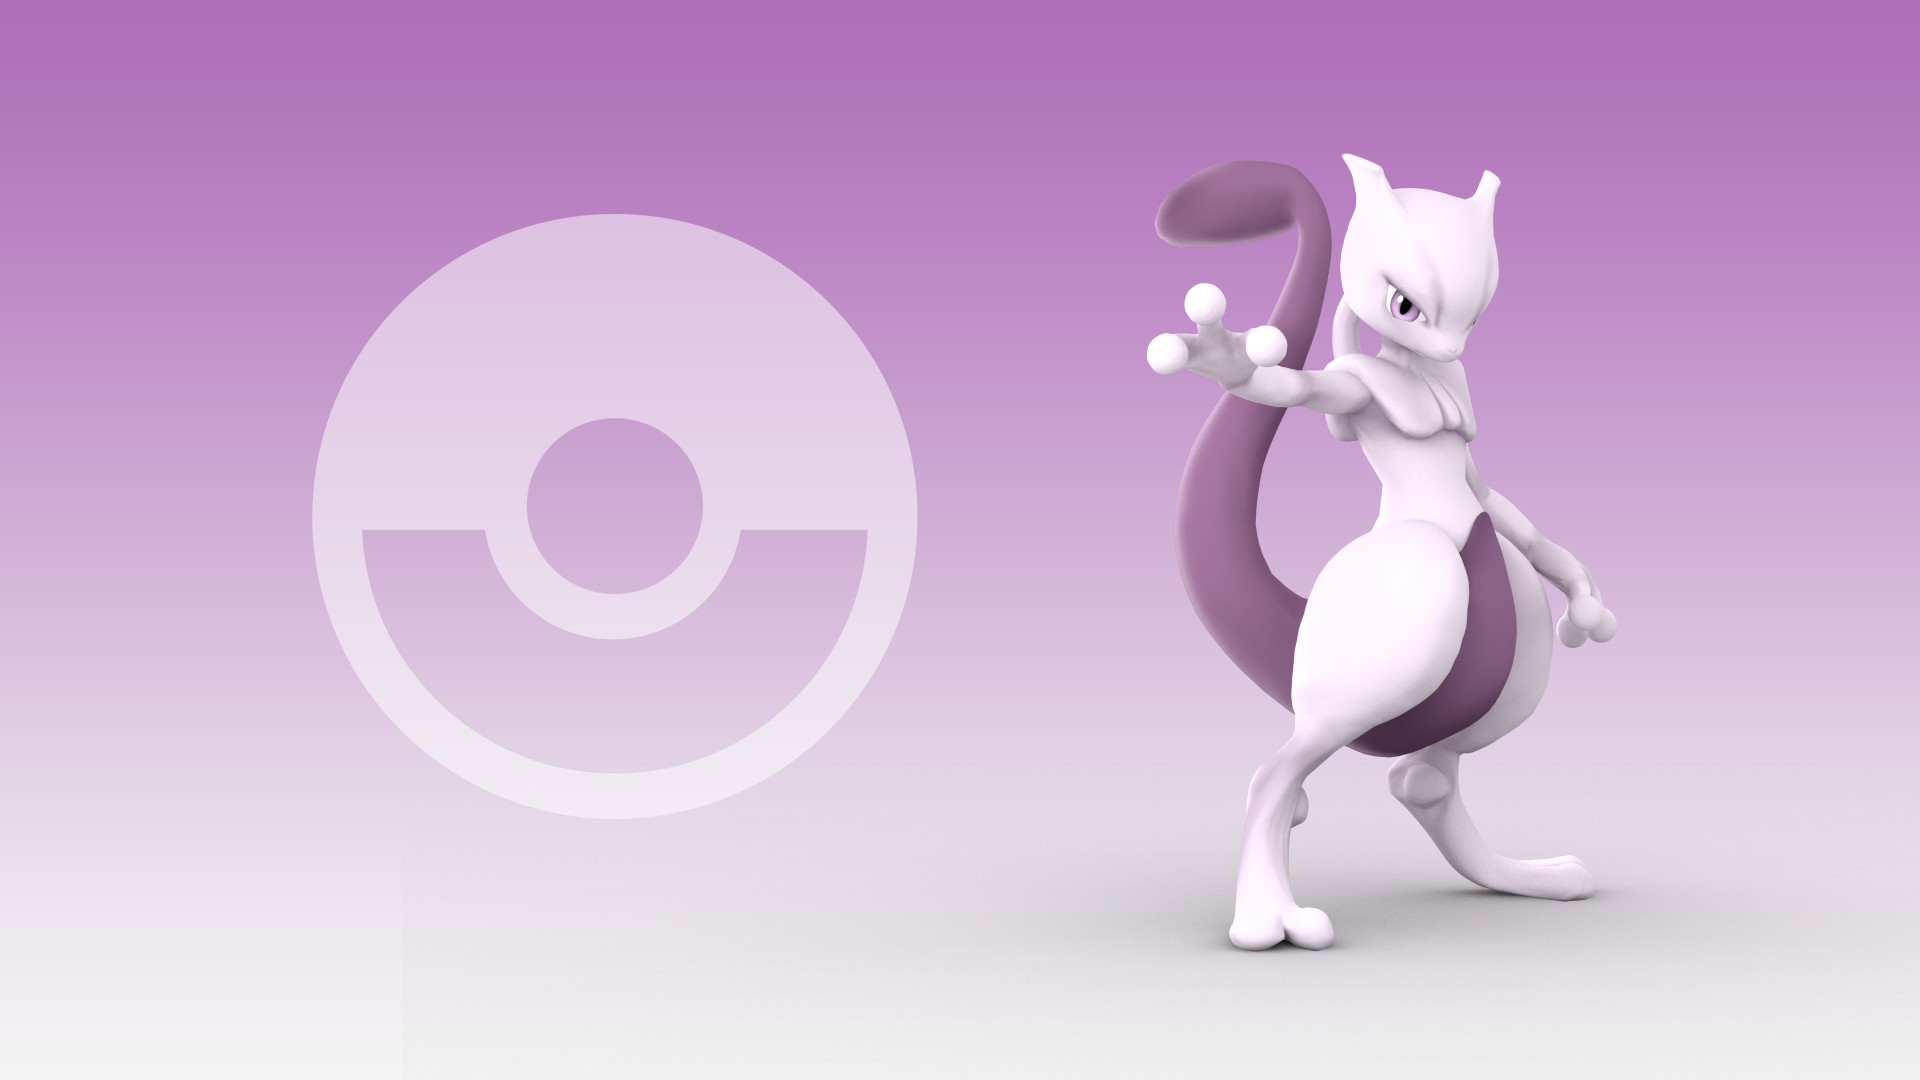 What Nature Is Best For Mewtwo